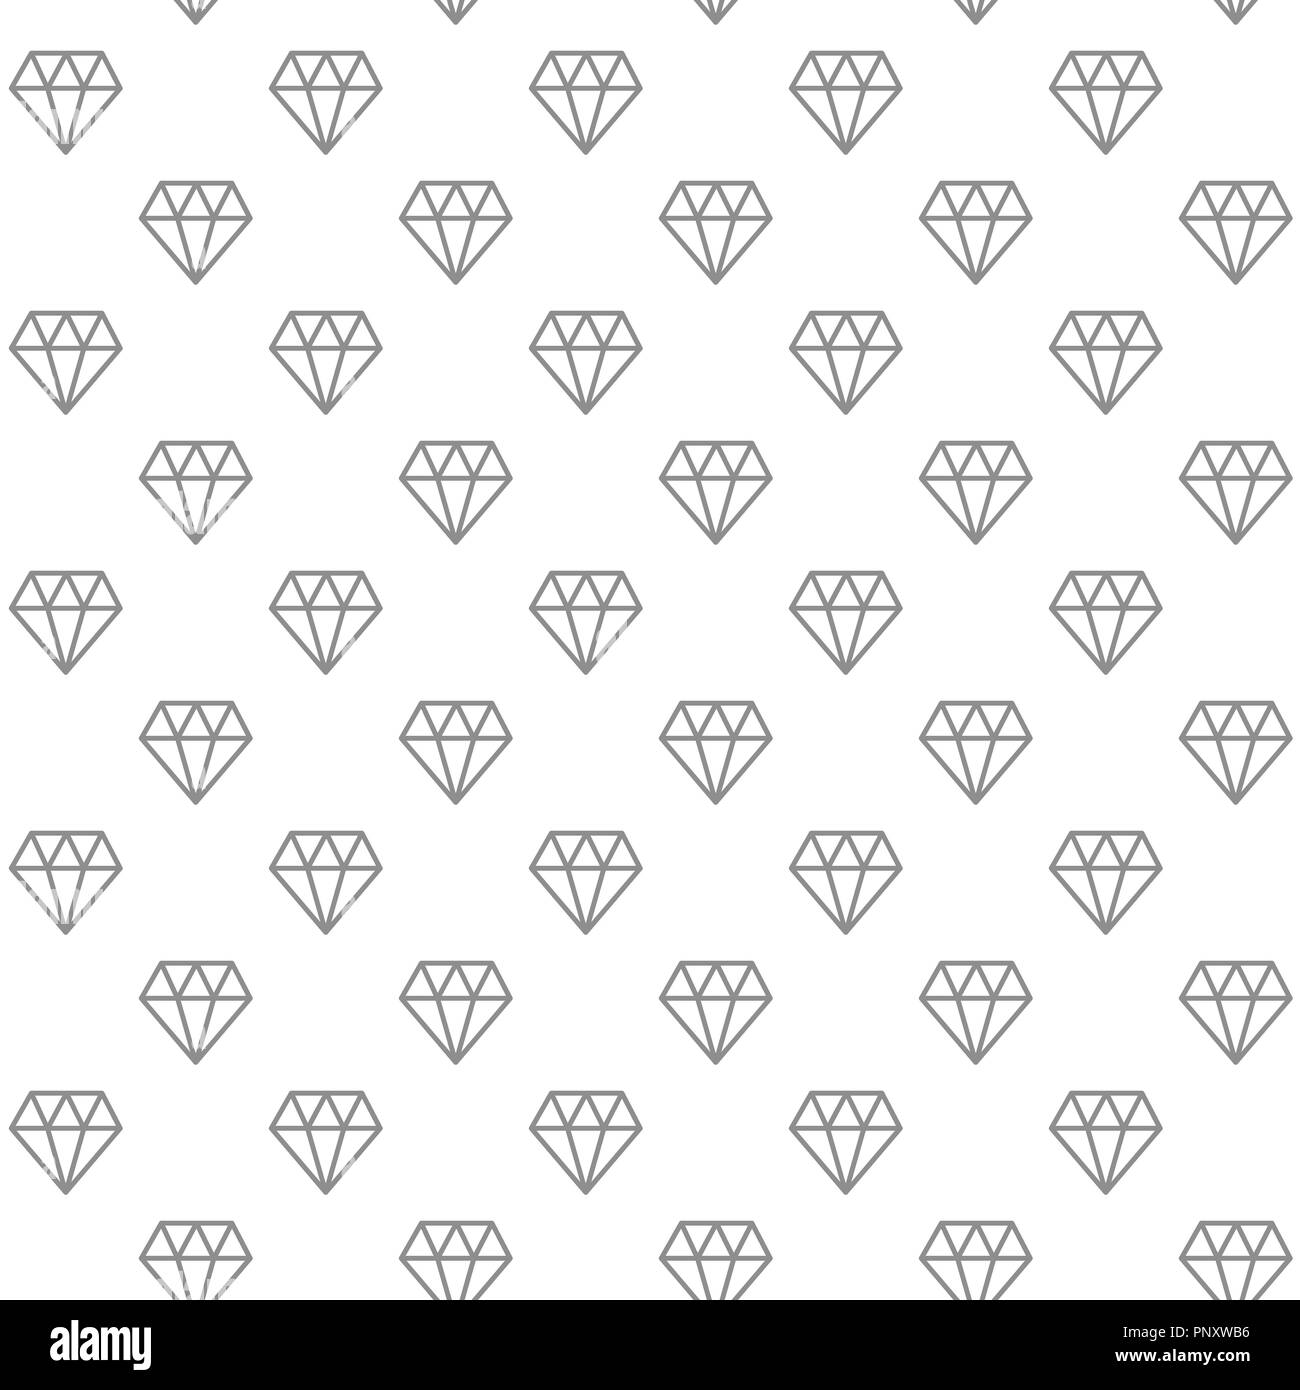 Unique digital diamonds seamless pattern with various icons and symbols on white background flat illustration - Stock Image